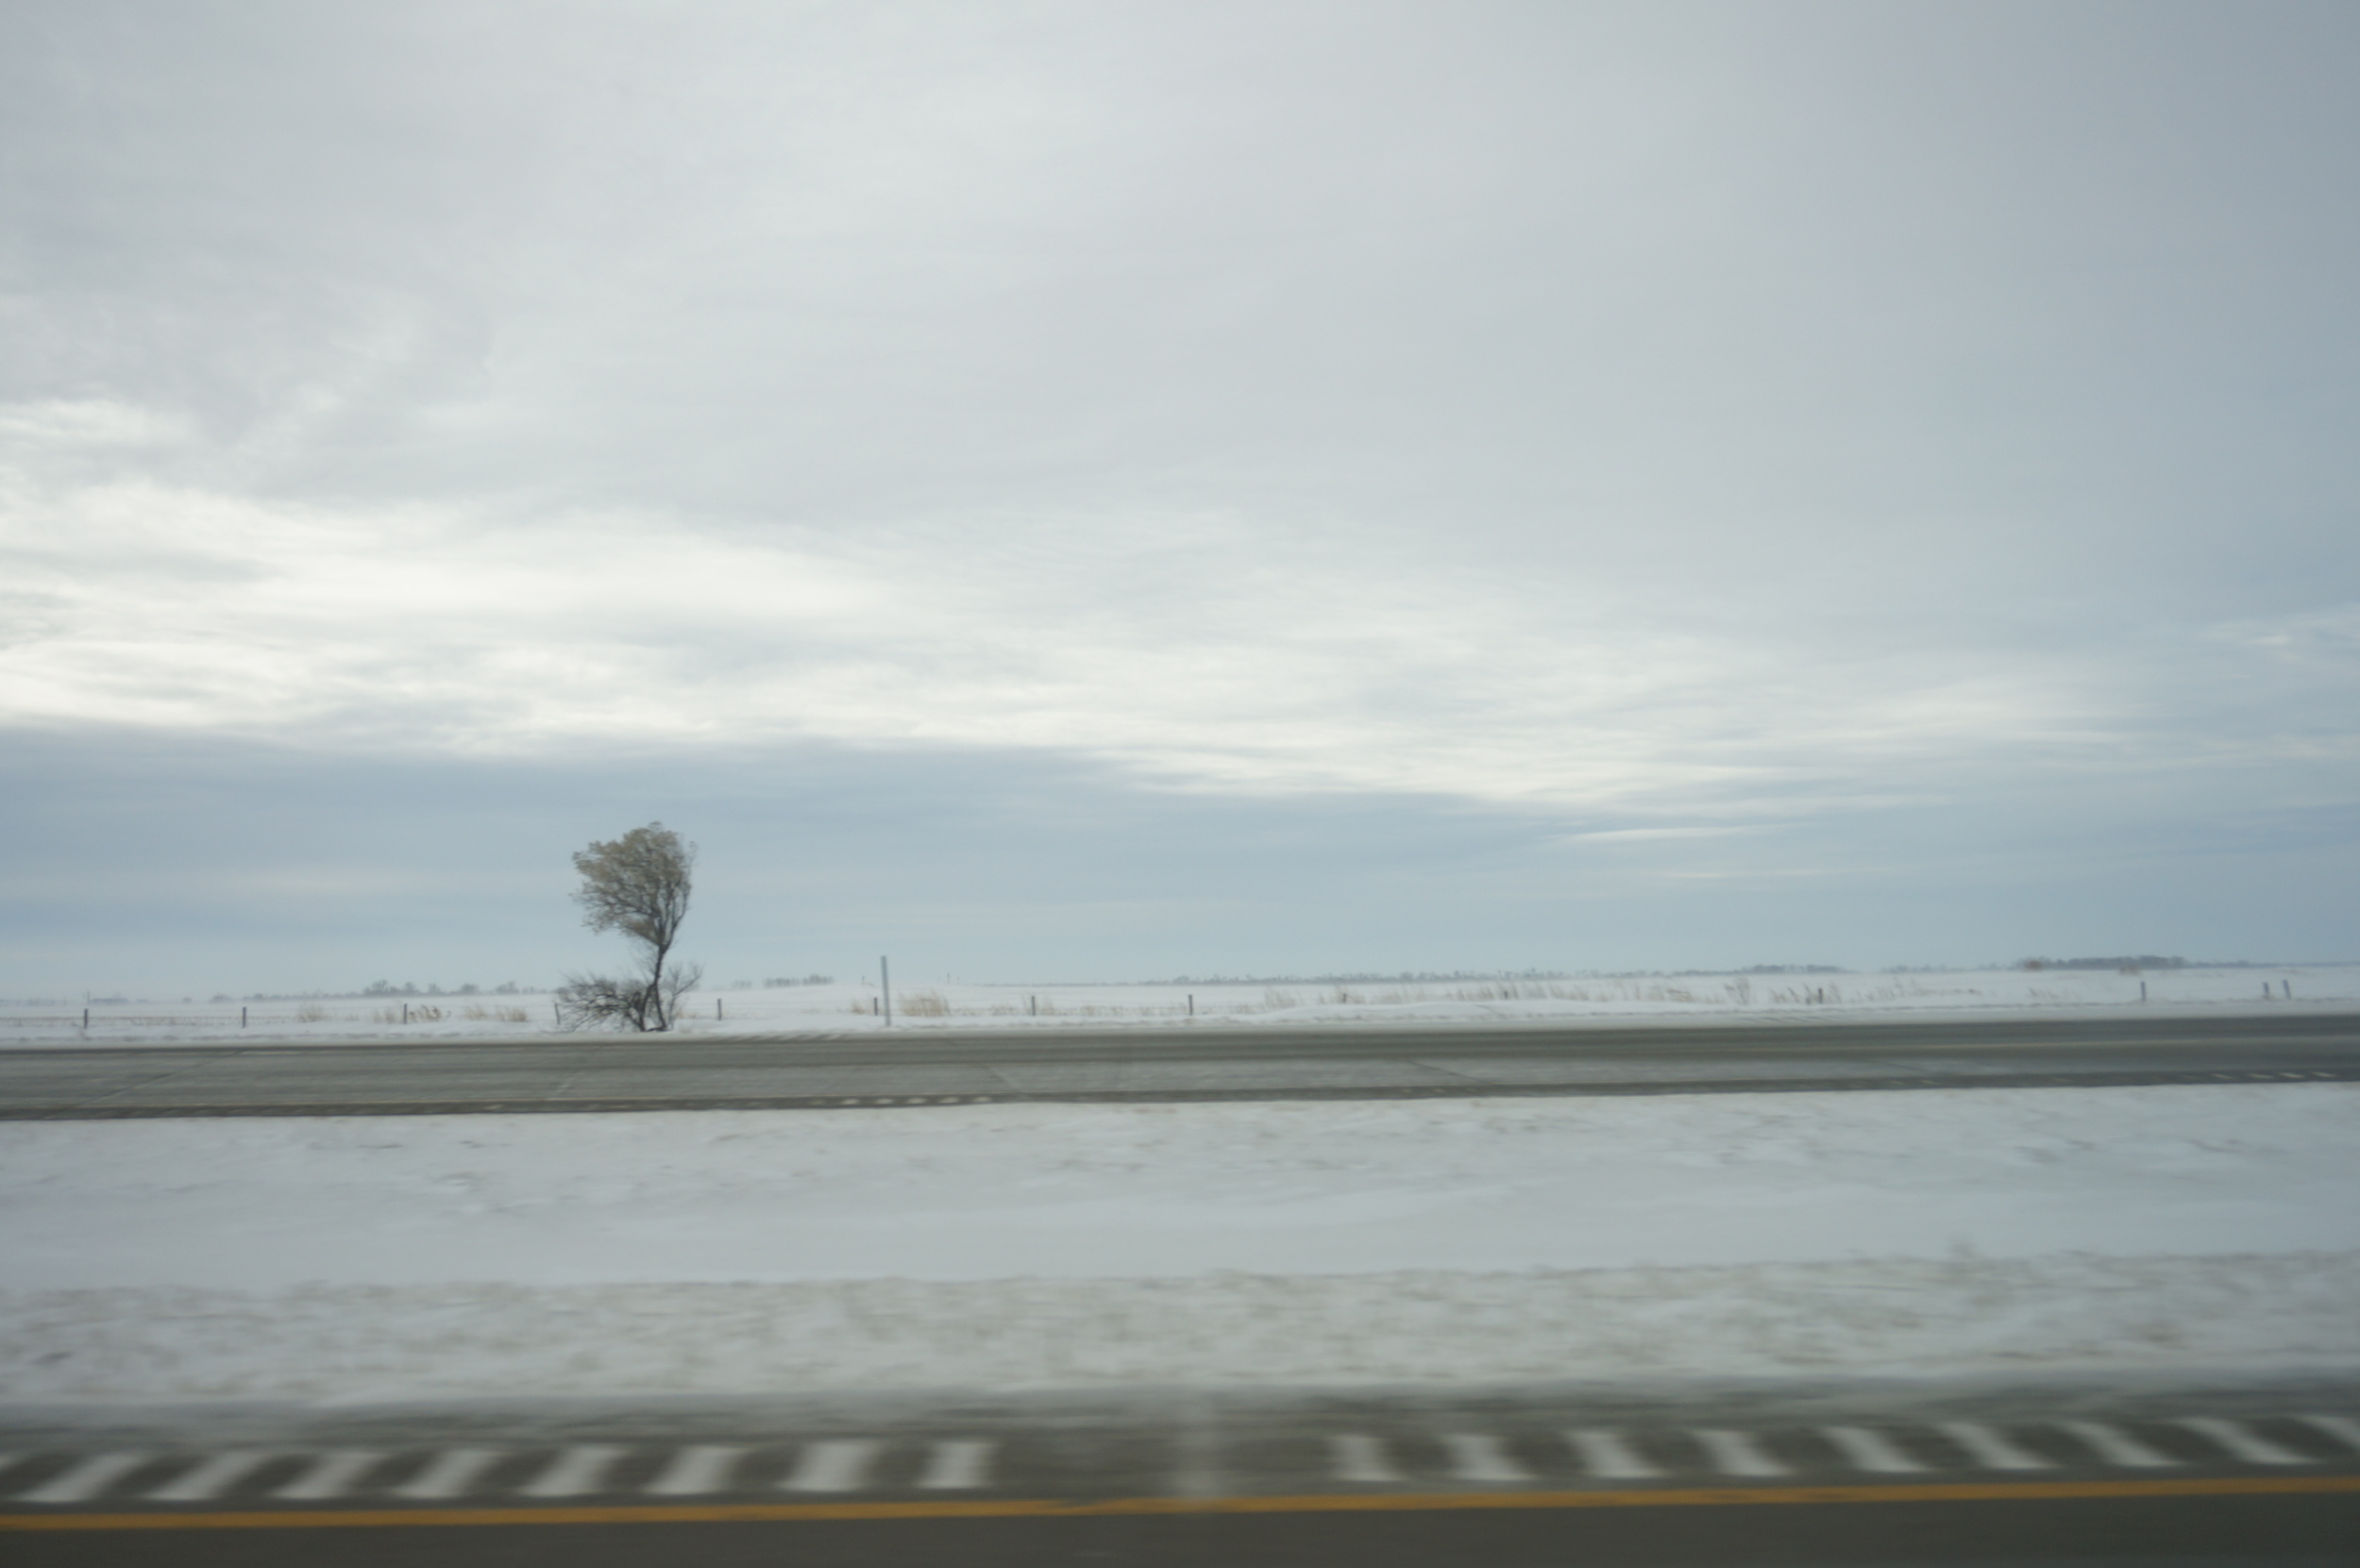 I loved this photo of our drive in North Dakota. Frigid cold and a lone tree dead-set on survival.